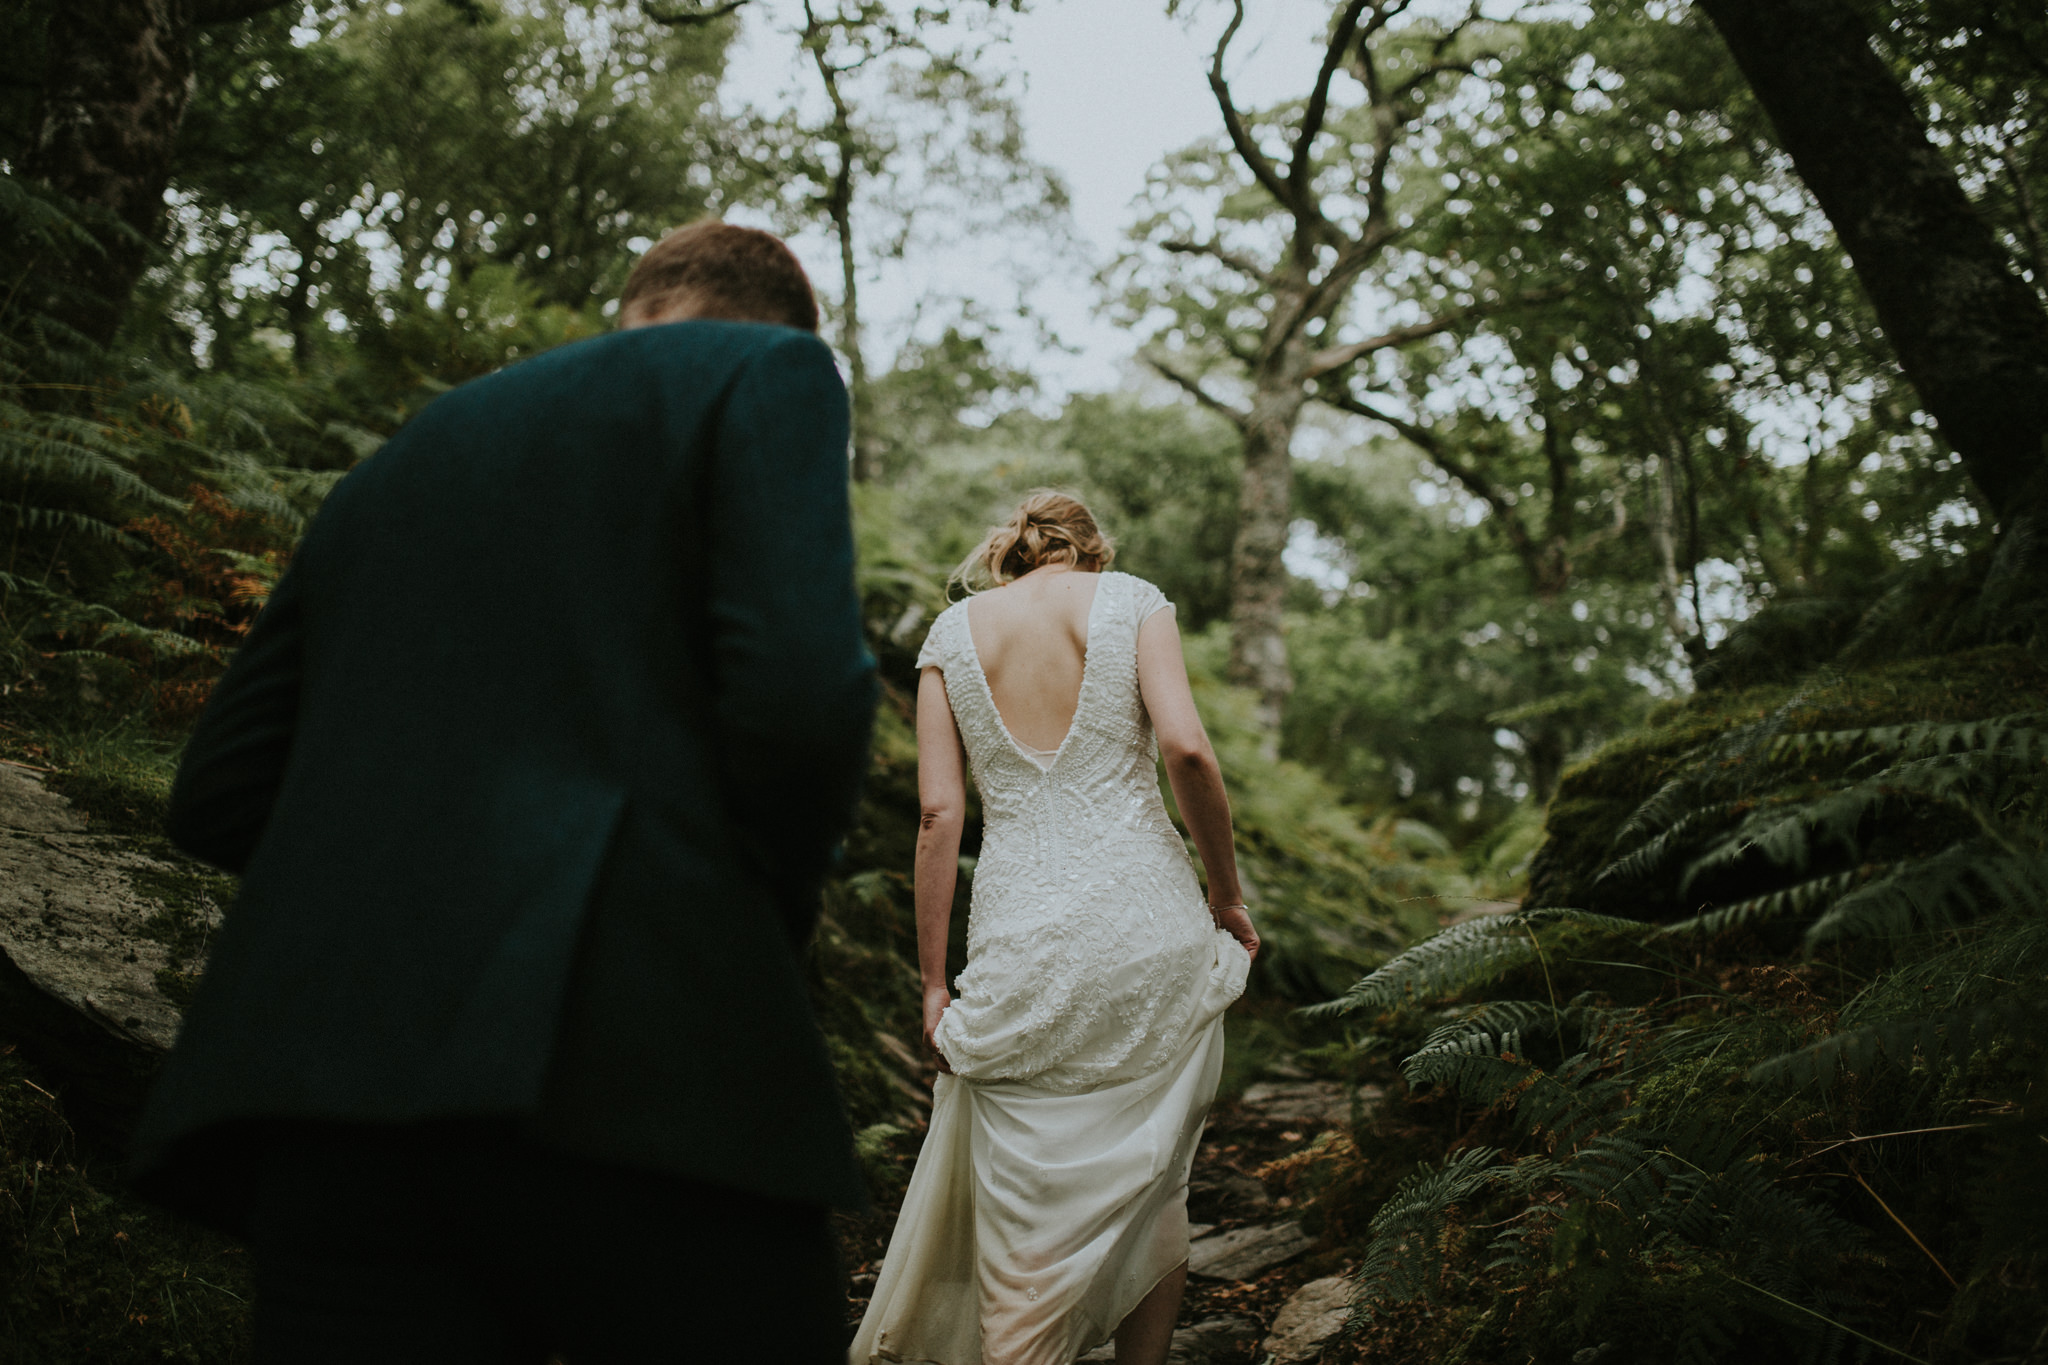 The wedding couple is hiking up a hill.